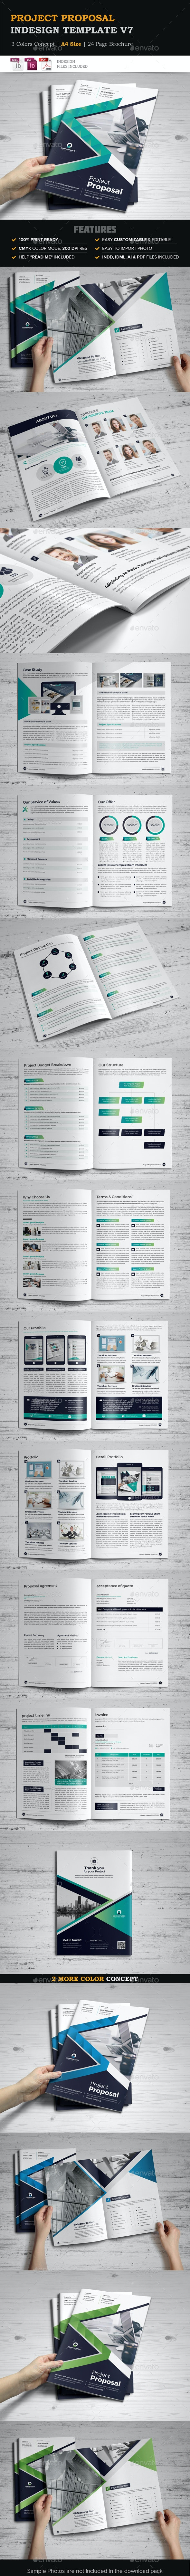 Project Proposal InDesign Template v7 - Proposals & Invoices Stationery